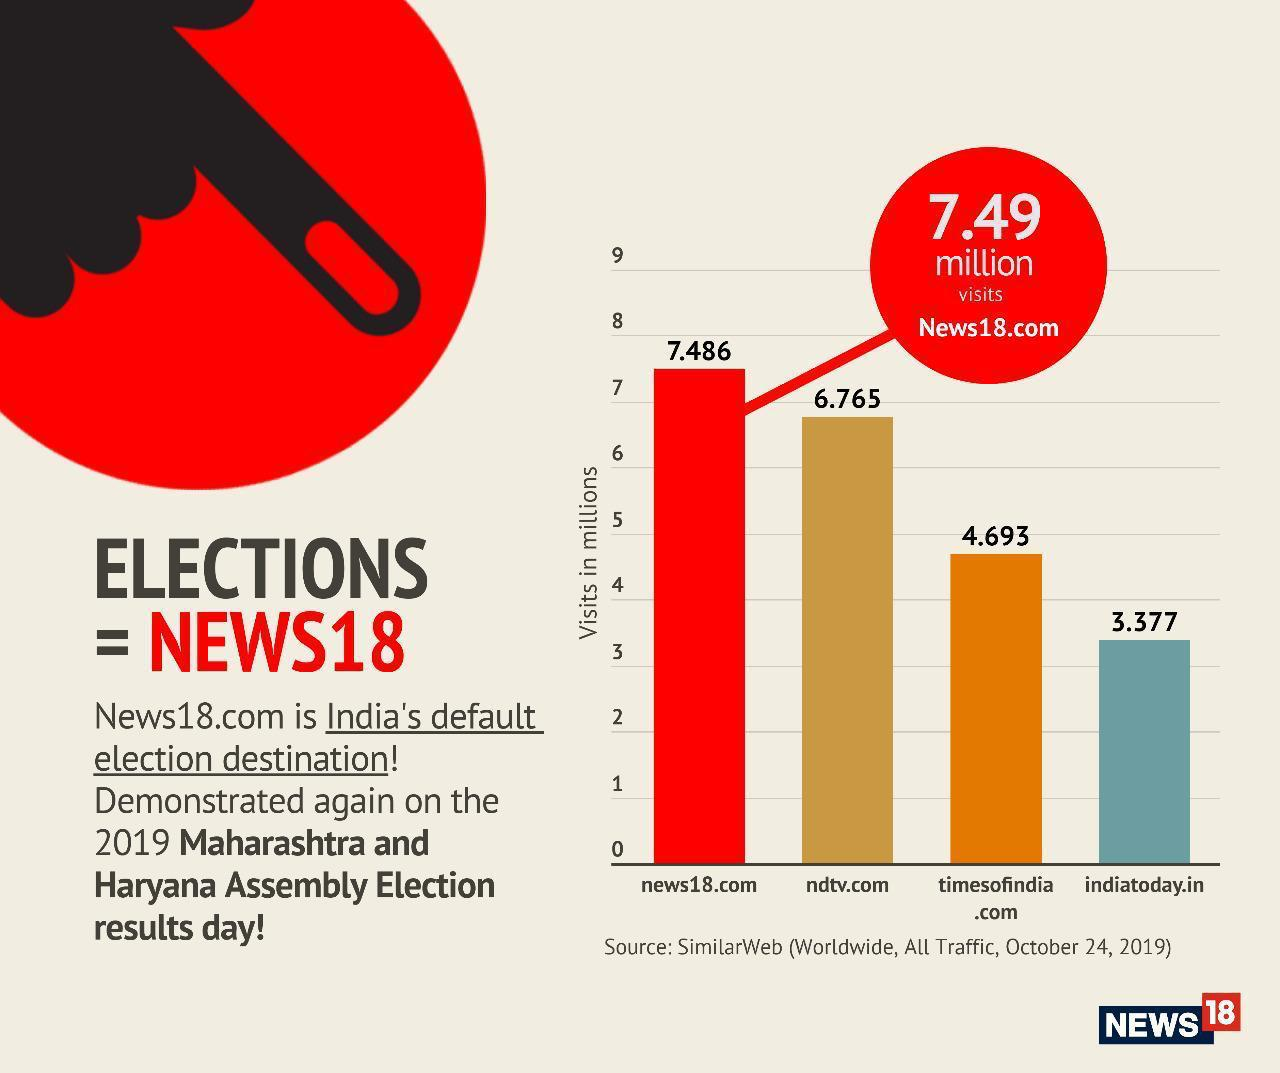 News18com leads coverage of 2019 Maharashtra Haryana Assembly election results day with 749 mn visits